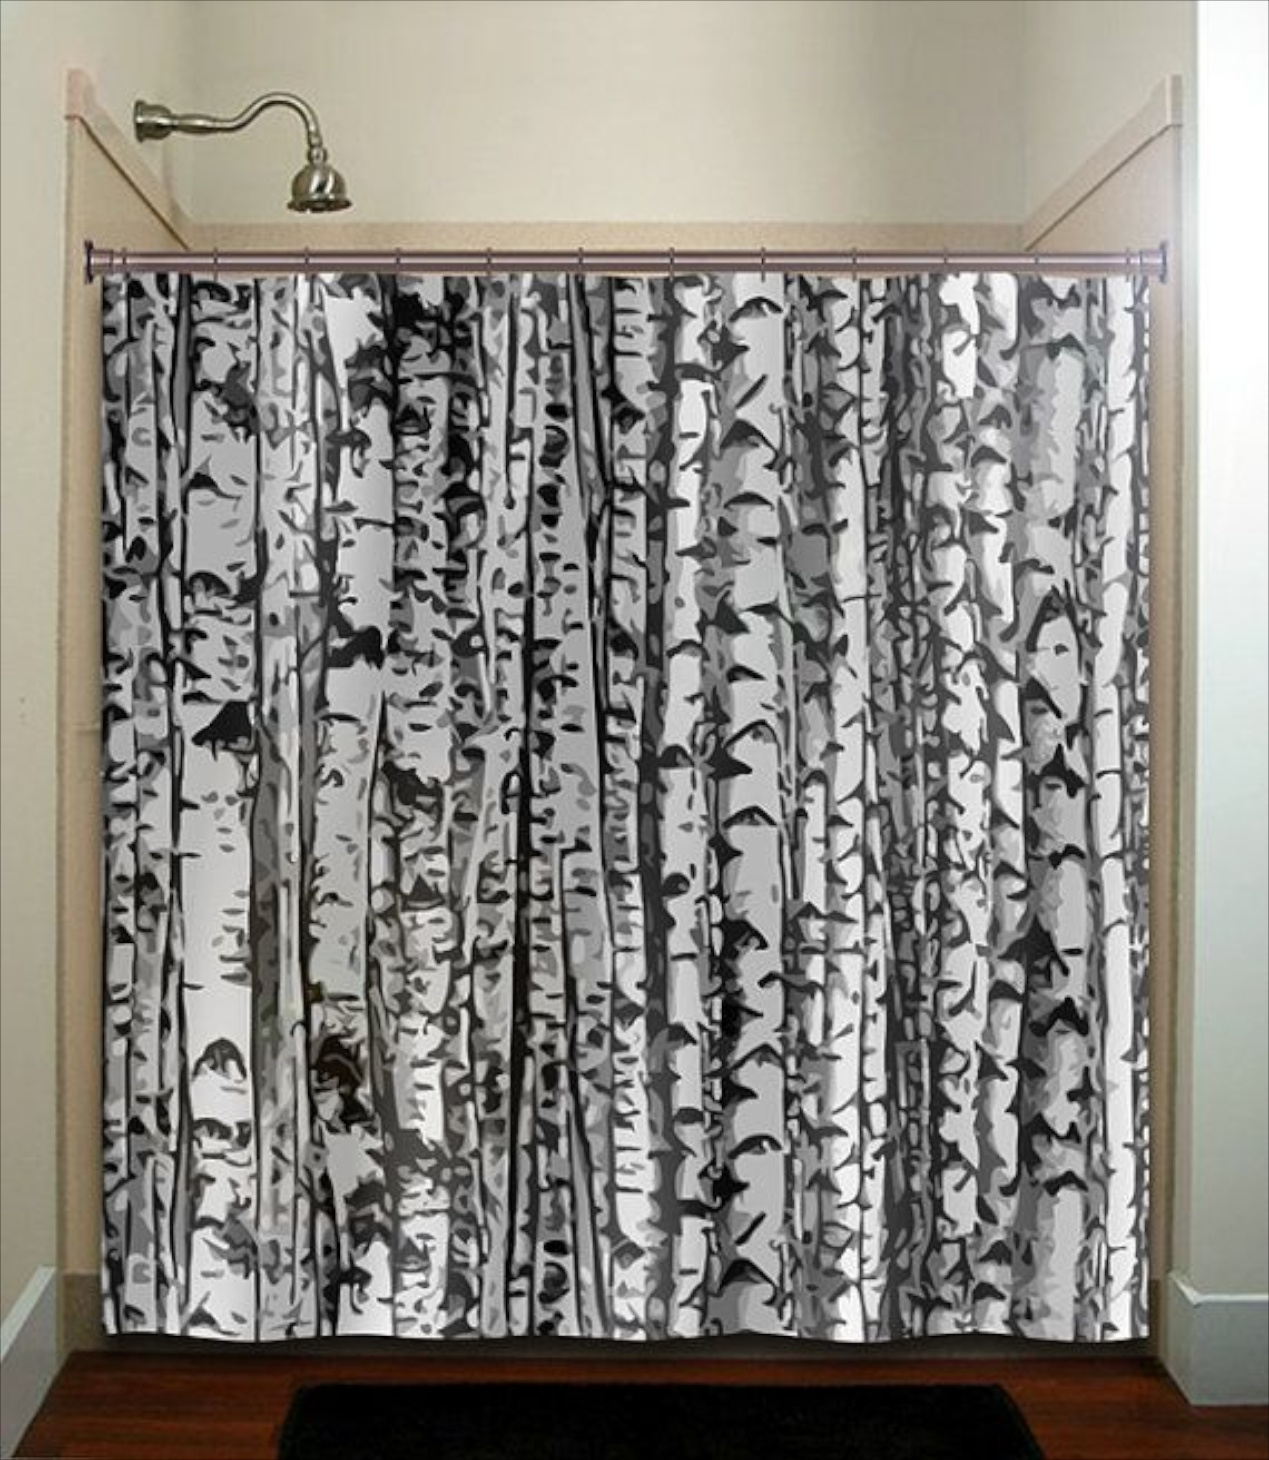 Birch tree shower curtains - Here A Printed Birch Branch Shower Curtain Adds A Fun Vibe